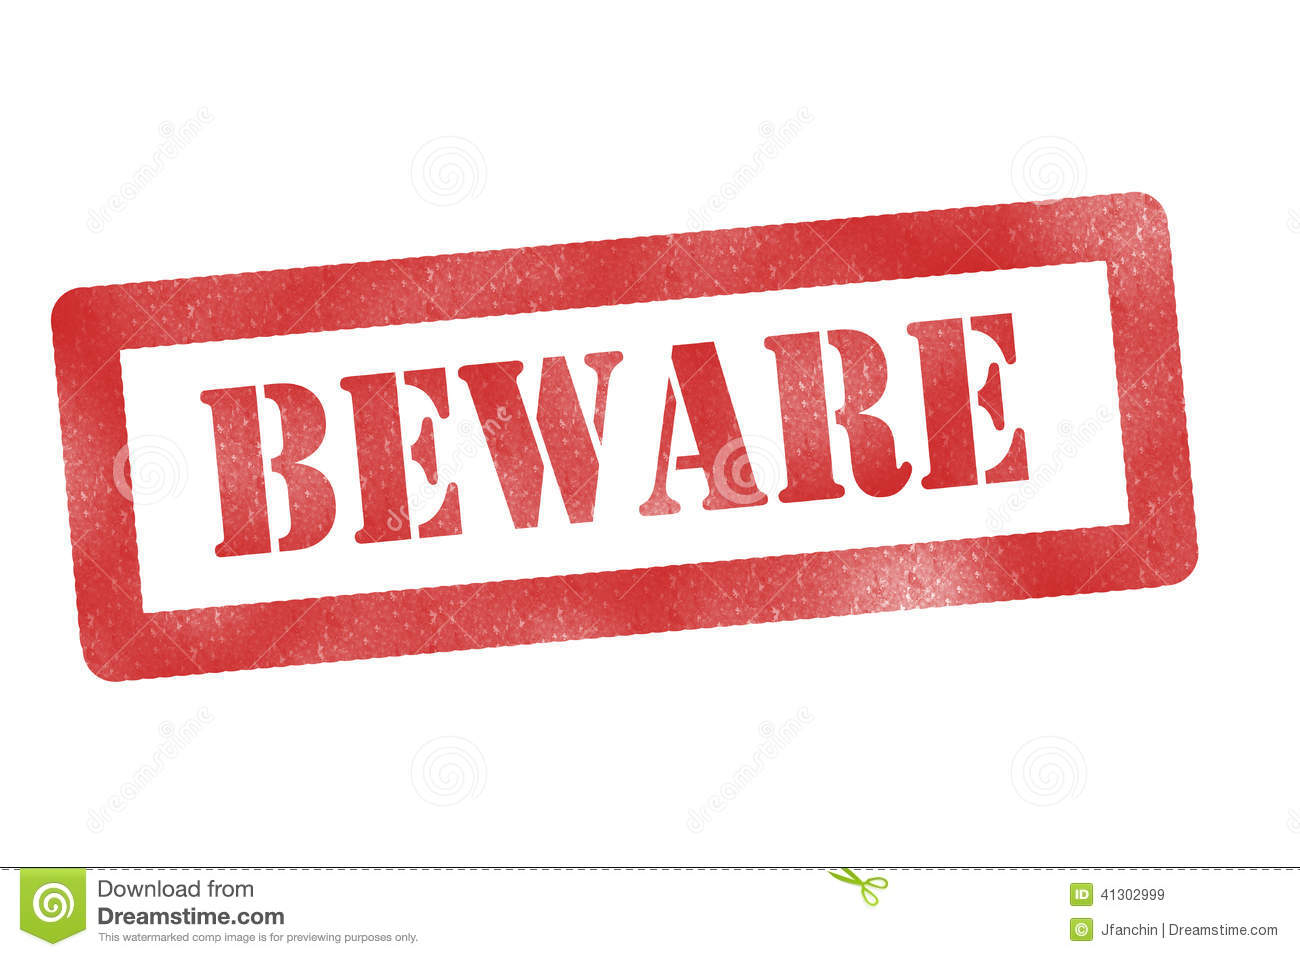 Beware sign stock illustration. Image of construction ...